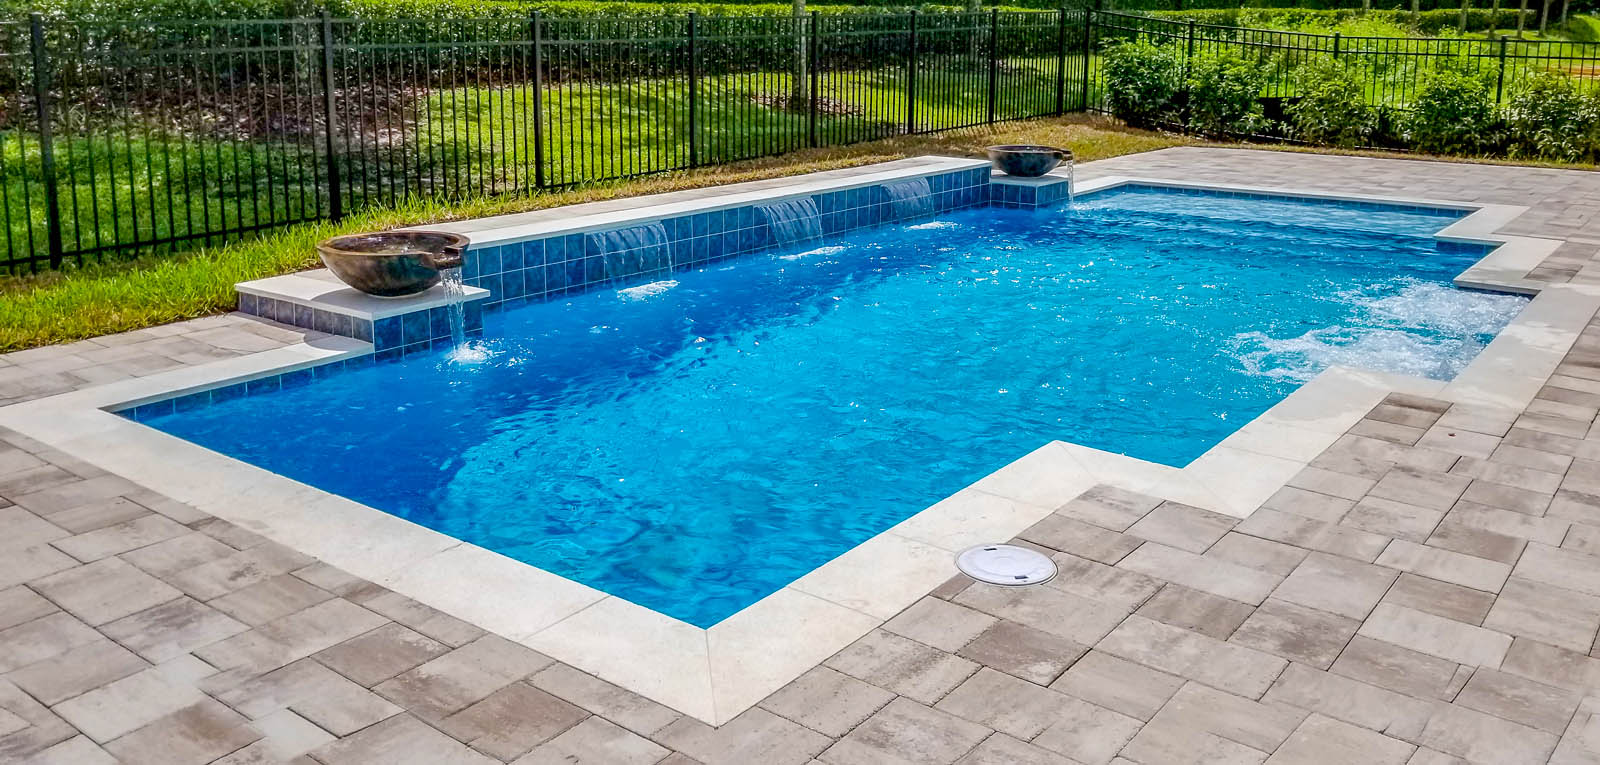 Modified Rectangular Pool with Water Bowls